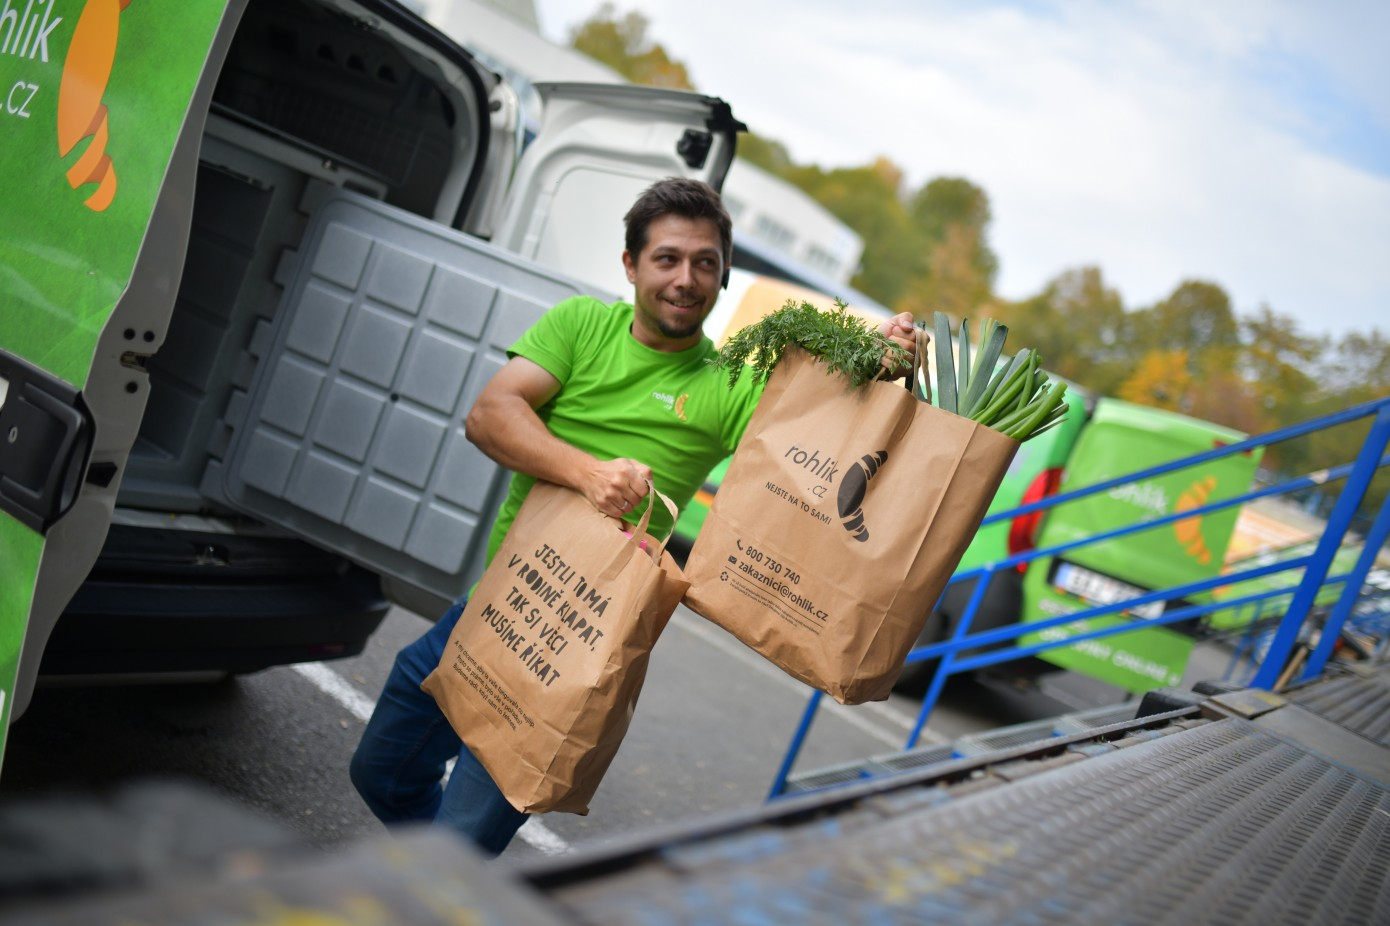 Czech on-demand grocery delivery startup Rohlik bags $230M to expand across Europe